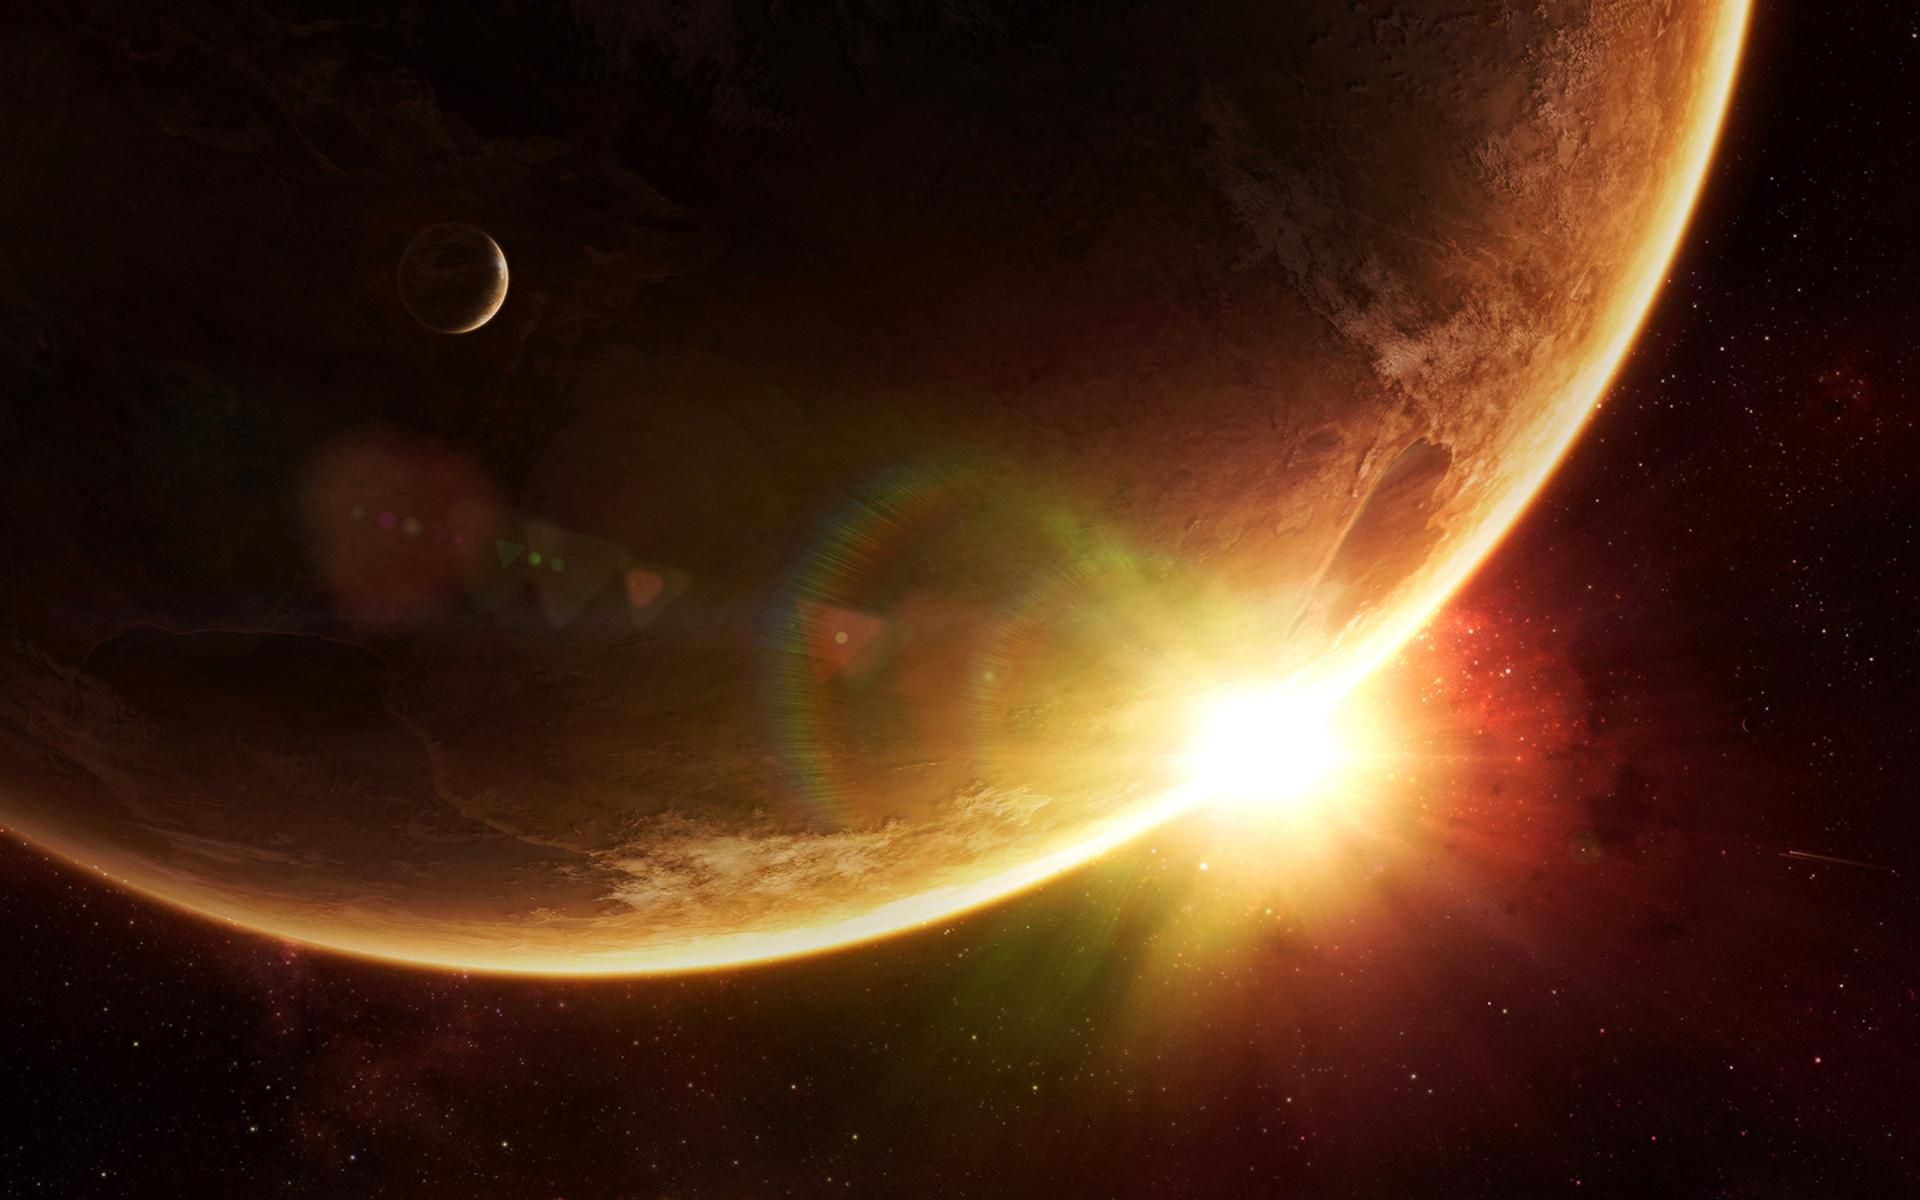 Sunrise Sci Fi wallpapers HD quality